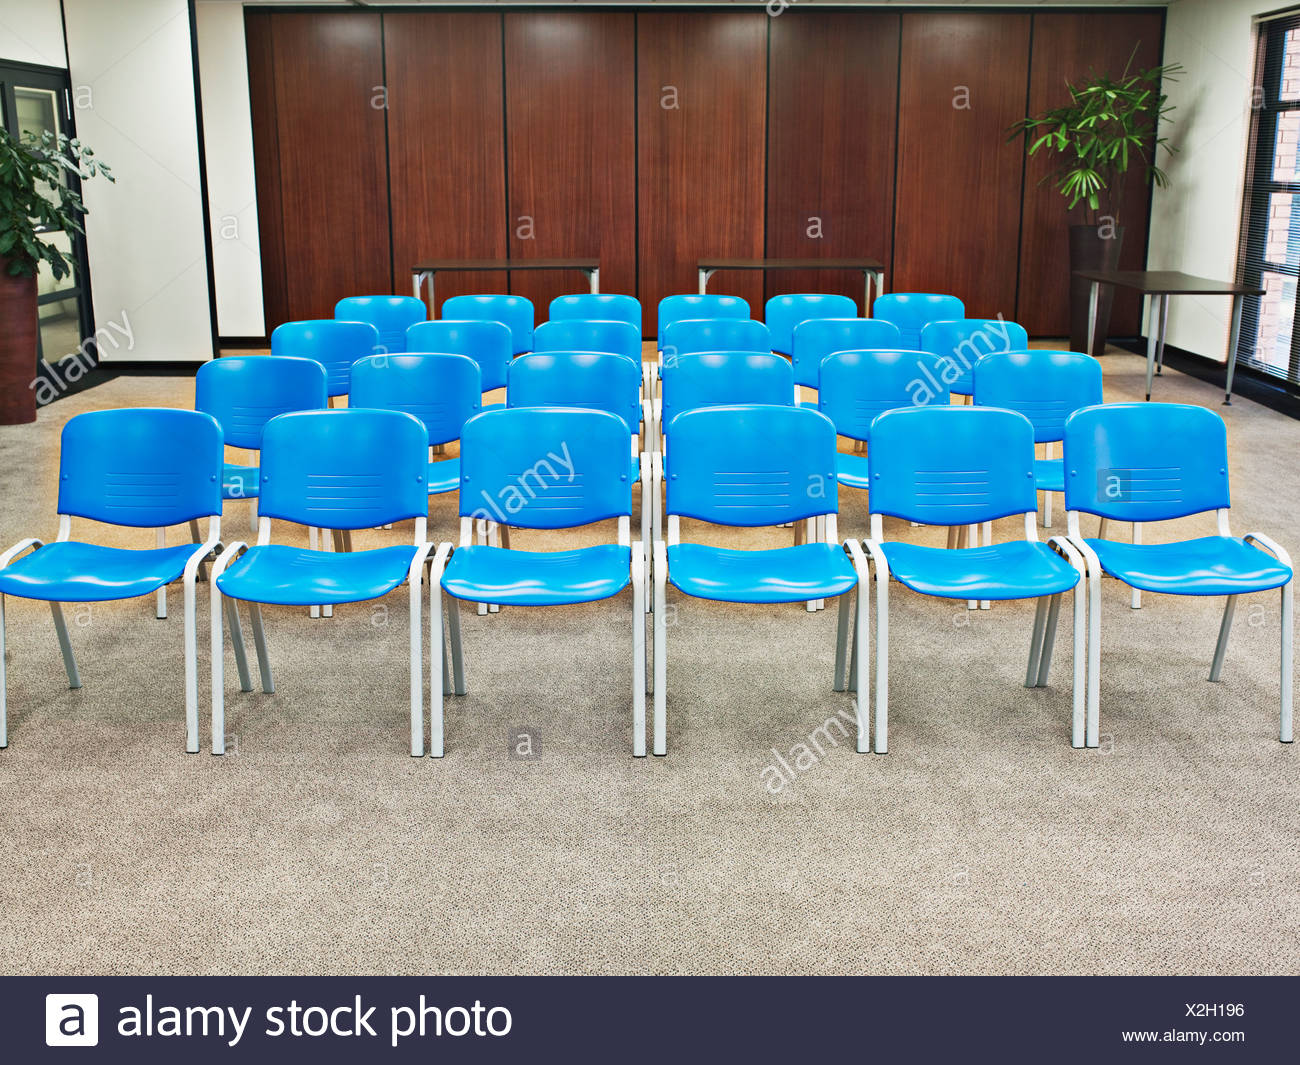 Rows of blue chairs in conference room - Stock Image & Row Chairs In Boardroom Stock Photos u0026 Row Chairs In Boardroom Stock ...